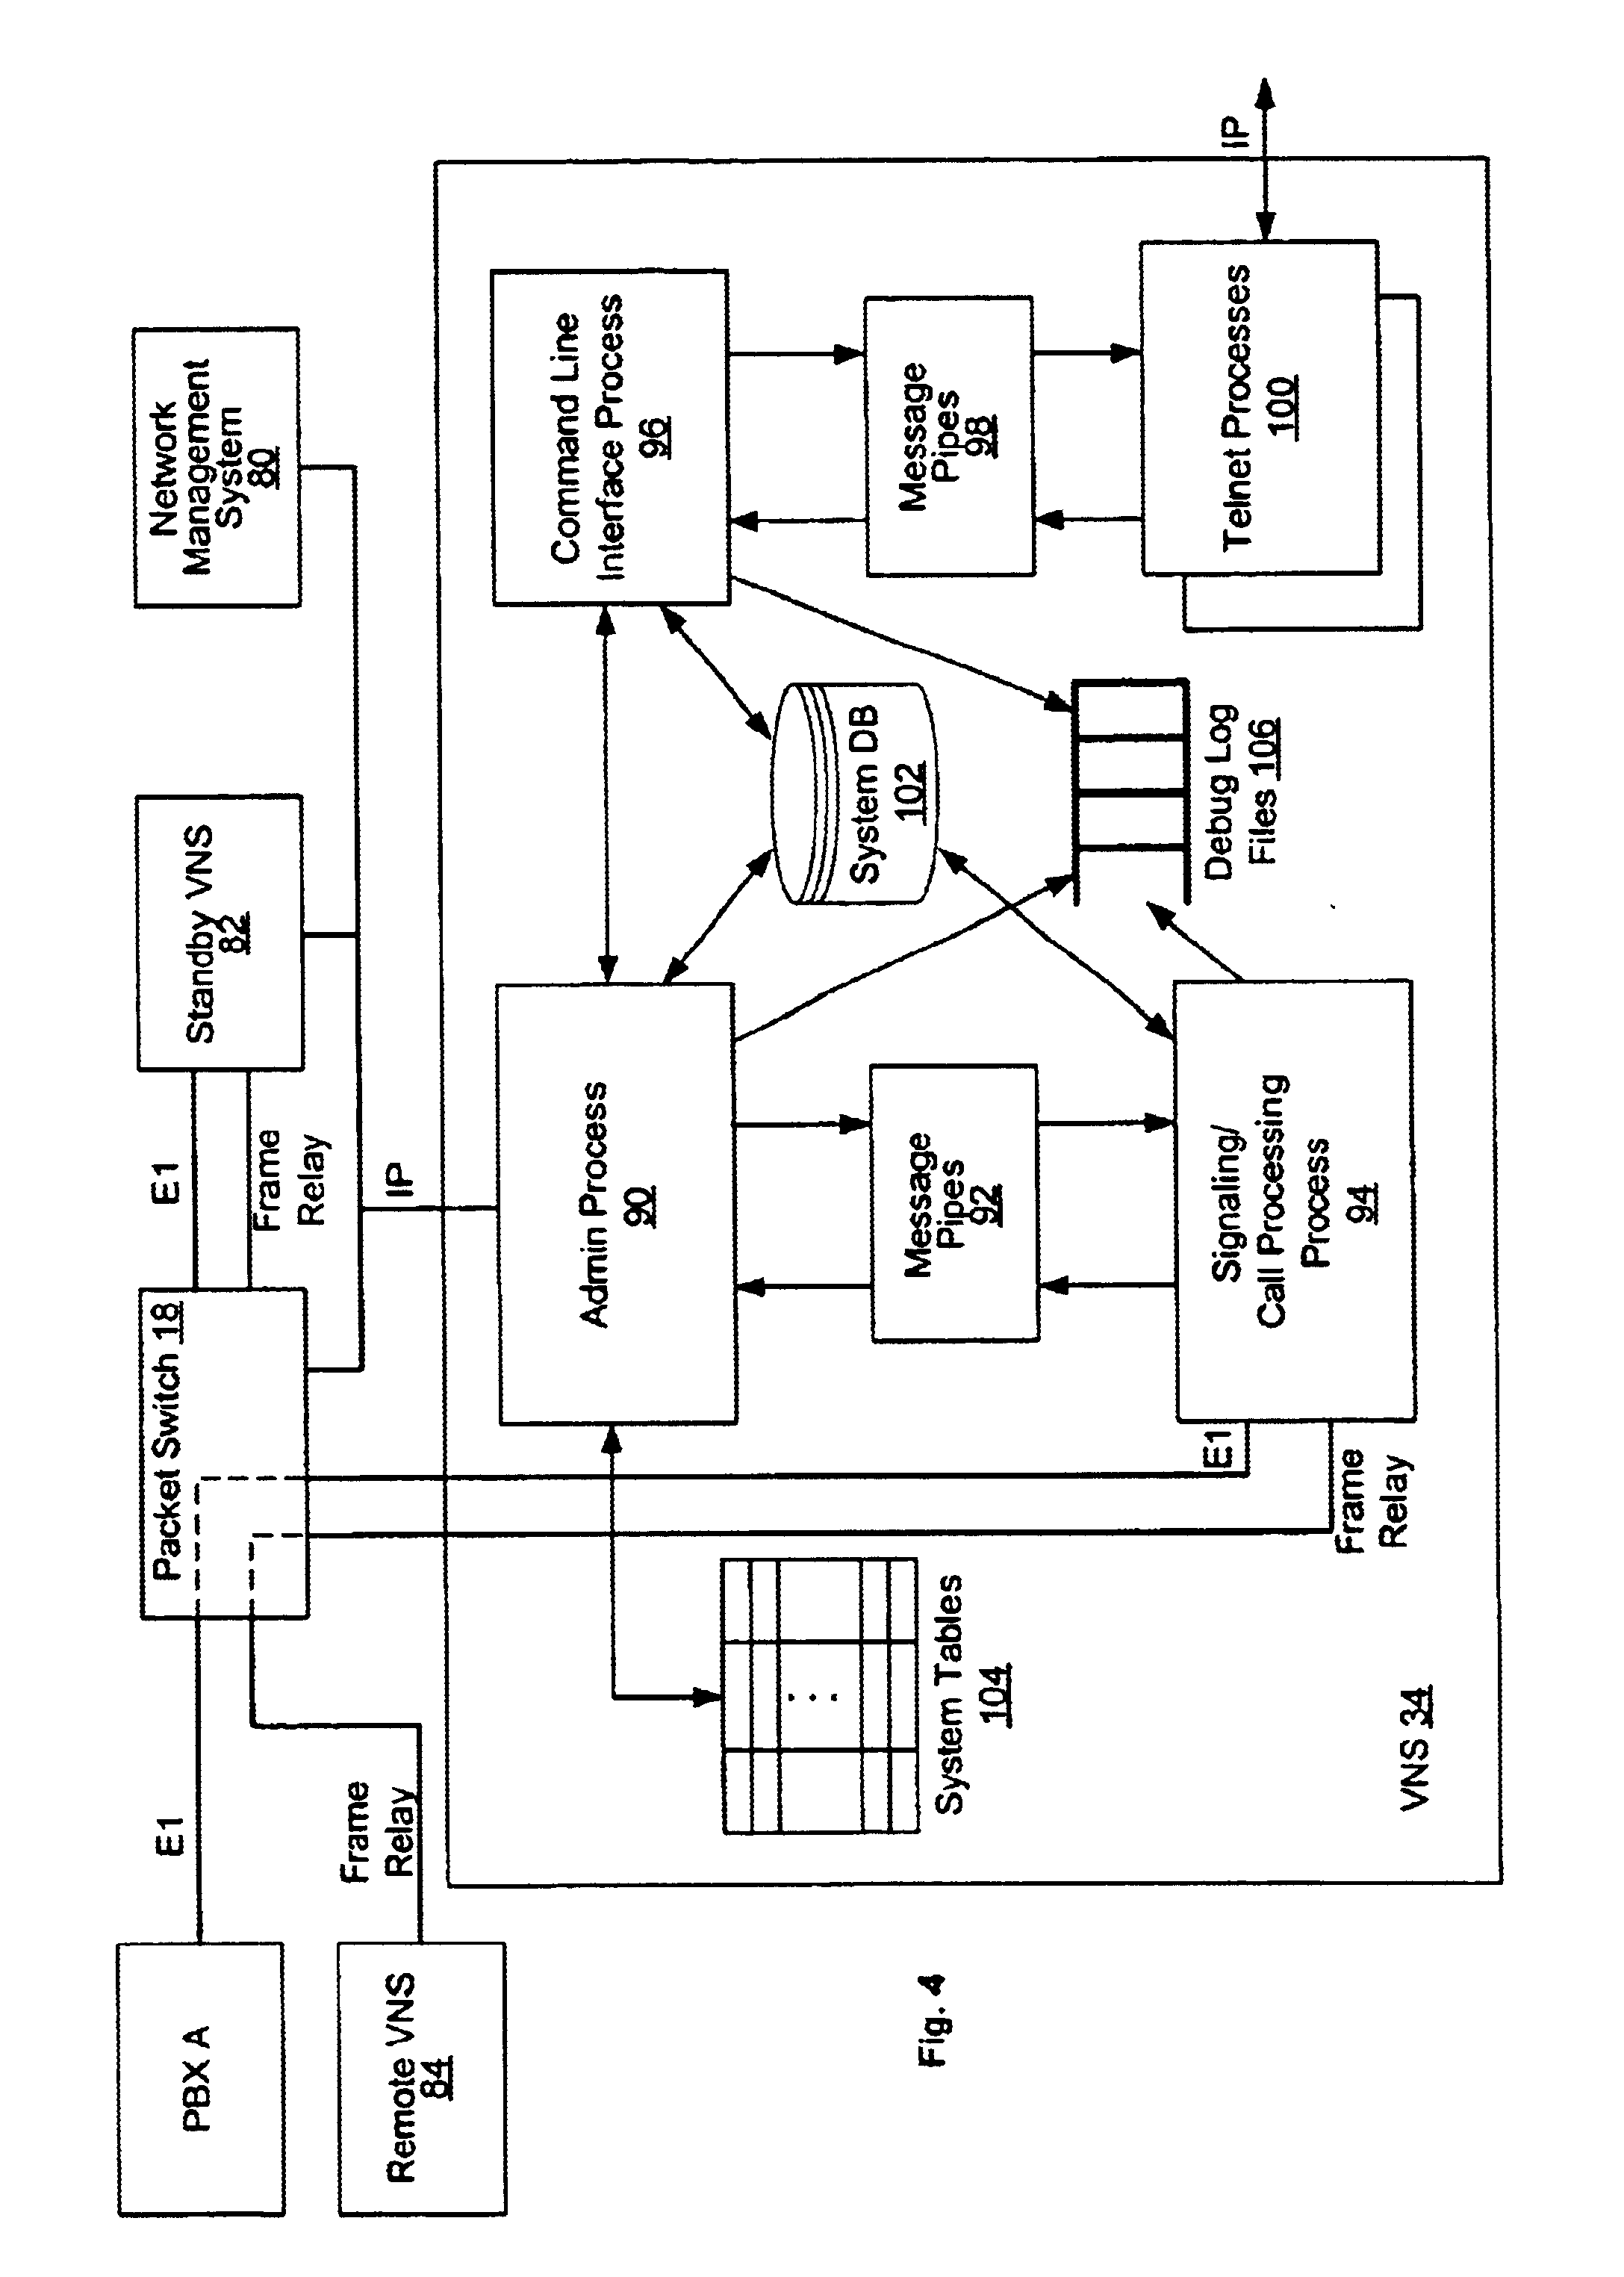 patent us6816483 - switched virtual circuit call processing  routing system